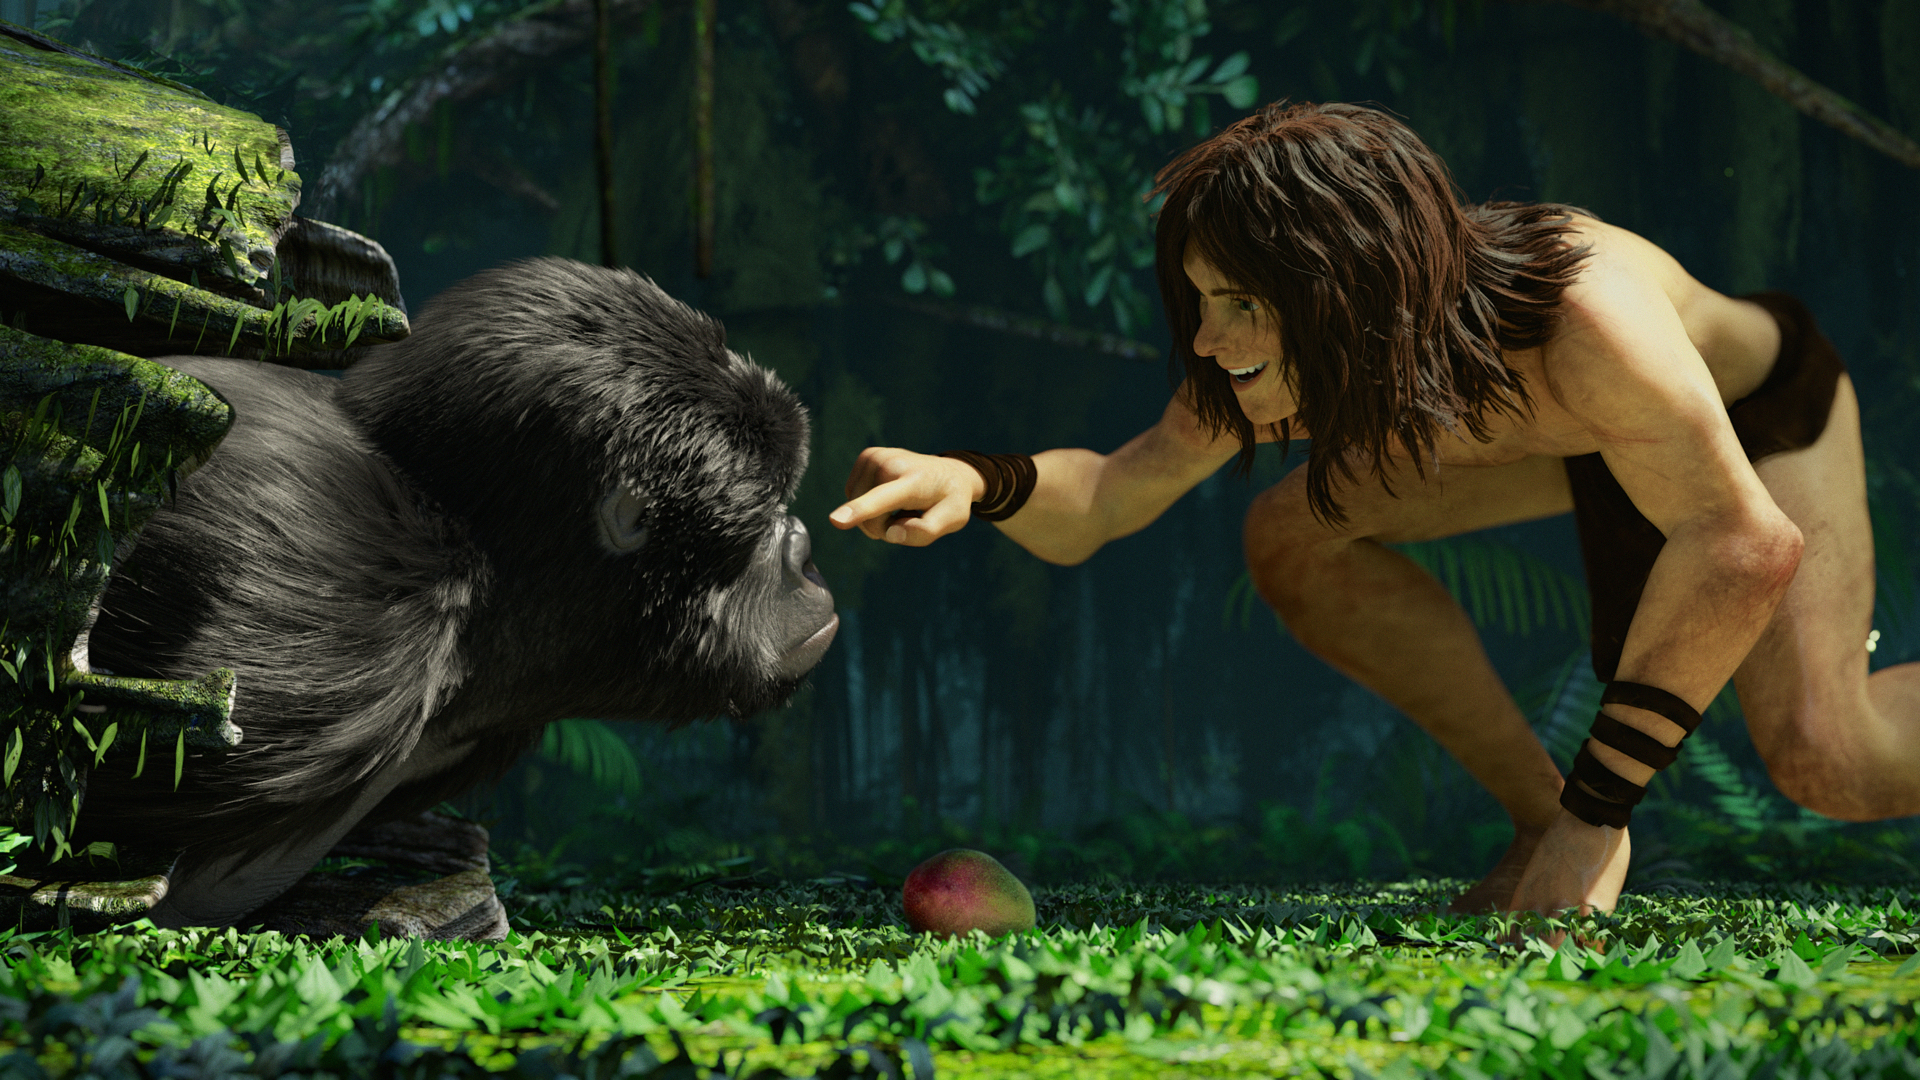 Tarzan 2014 wallpaper 2